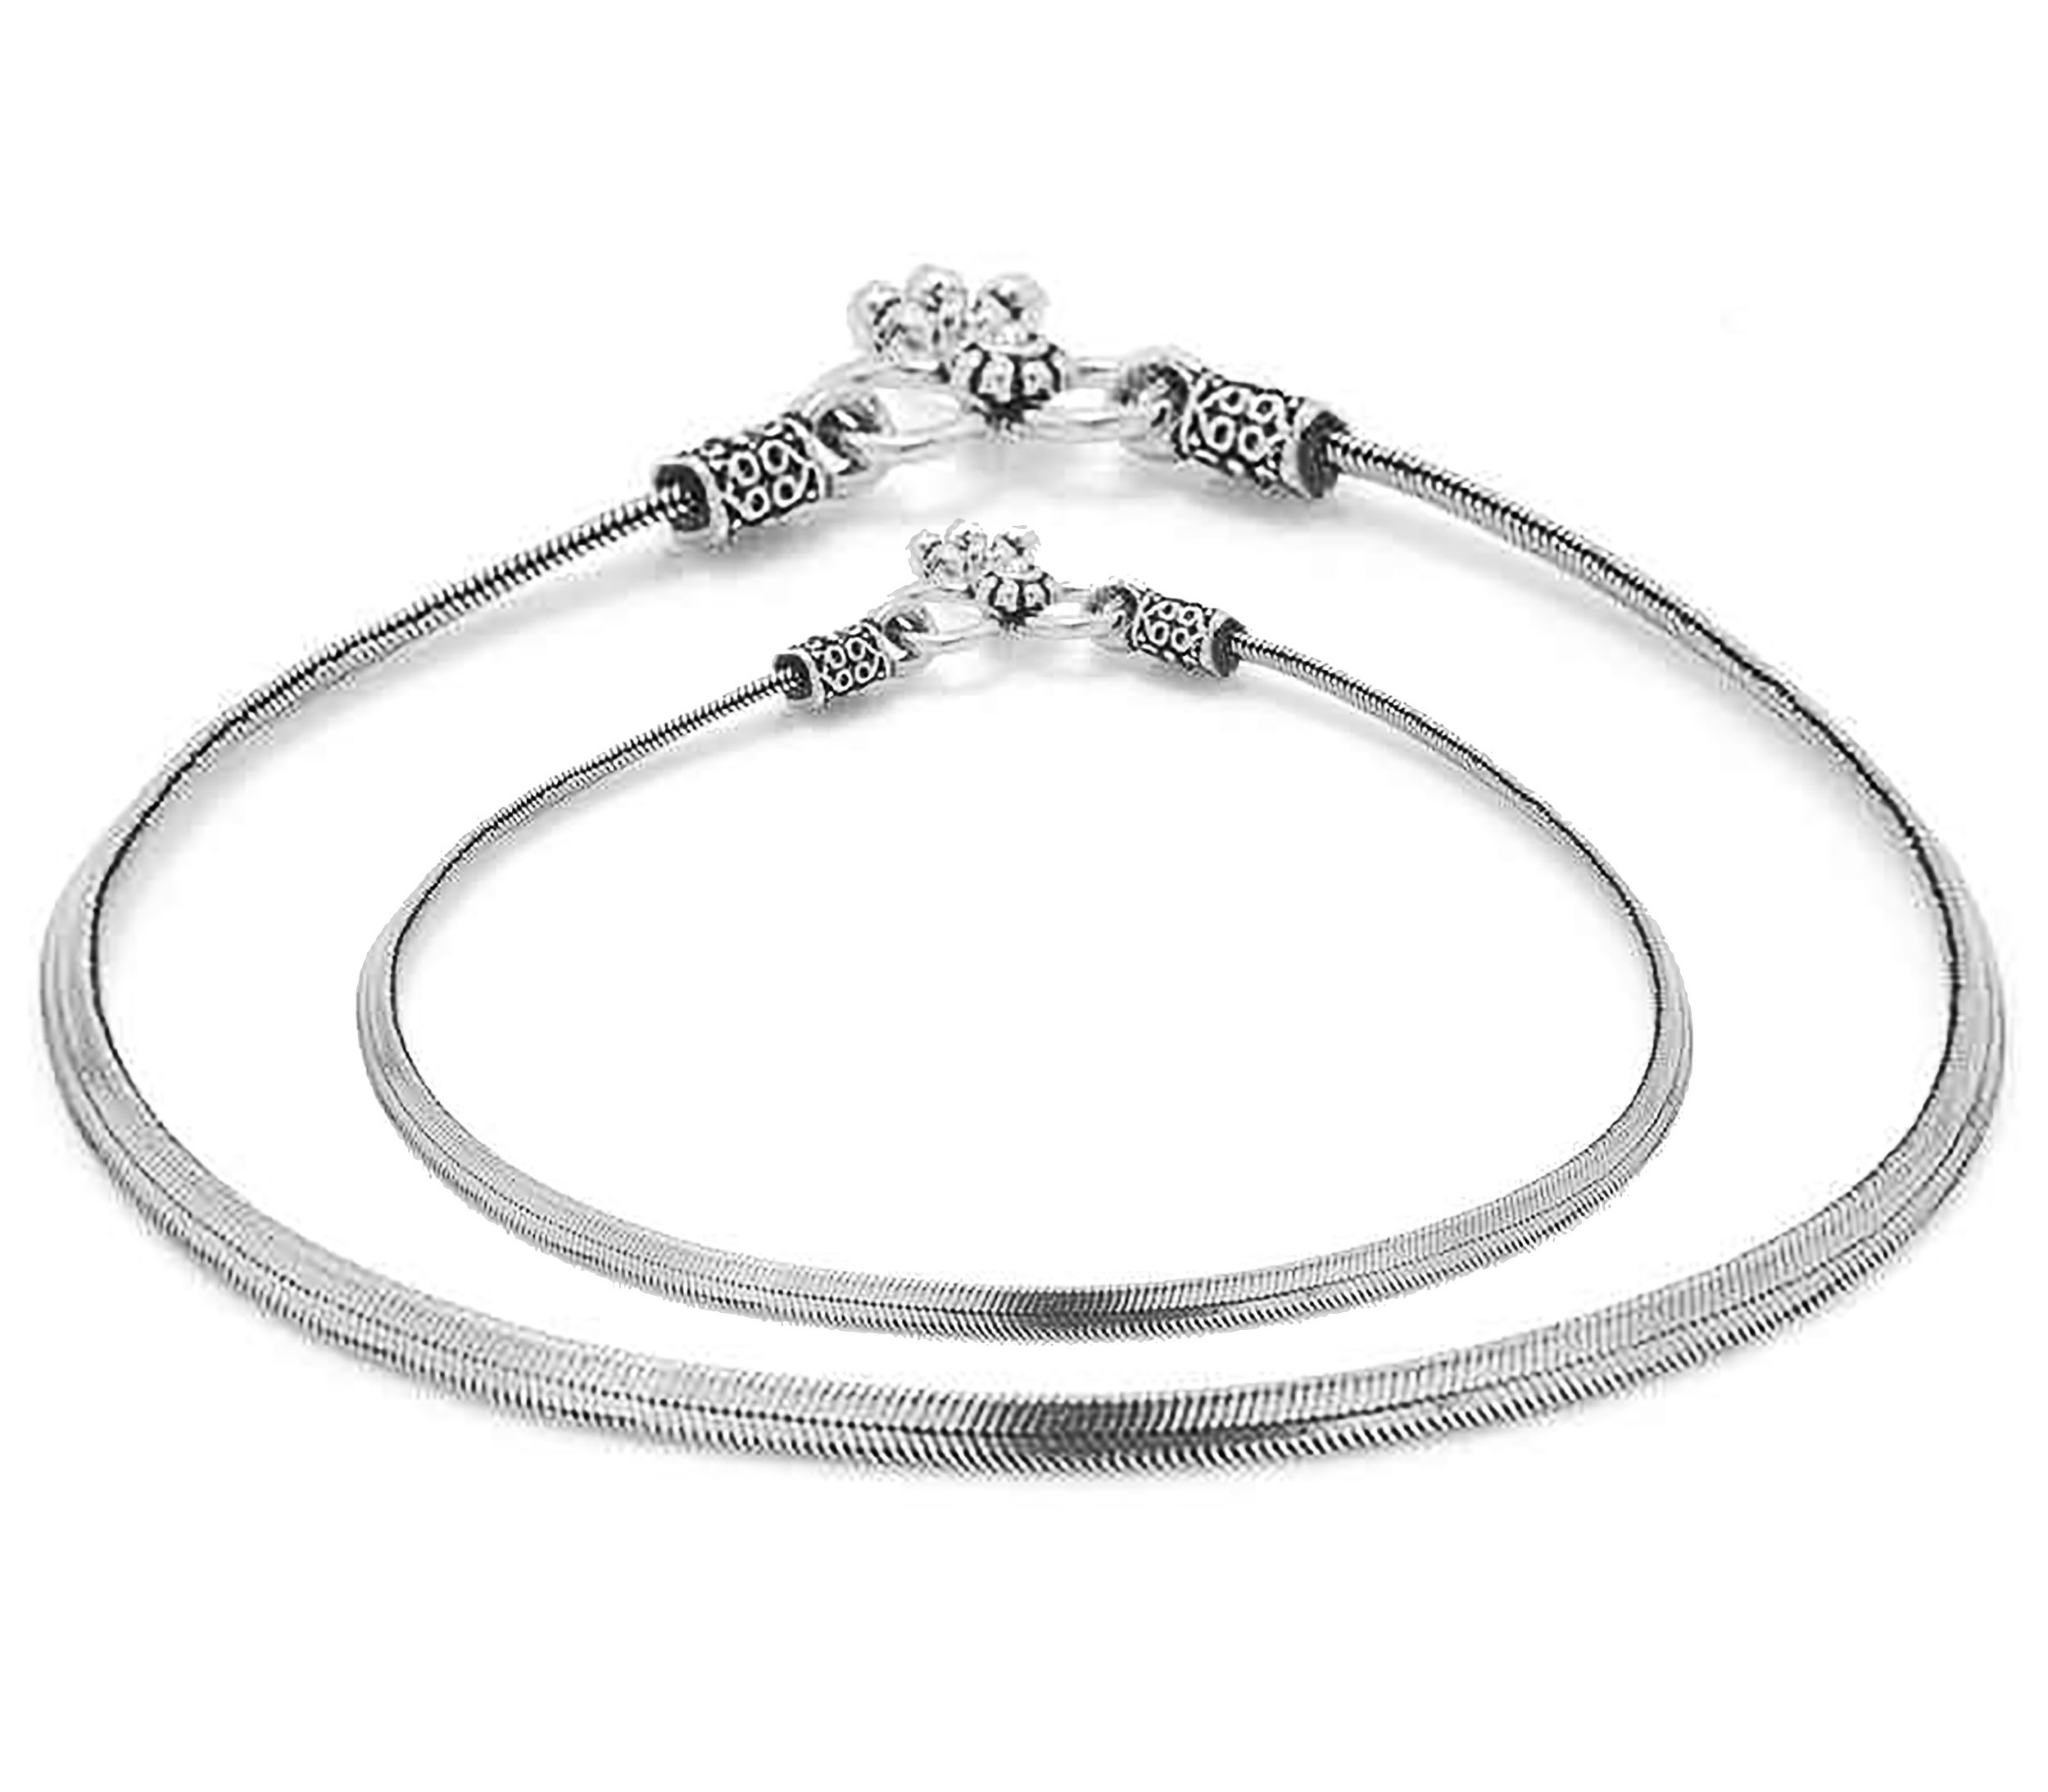 D&D Crafts Sterling Silver Anklets for Women For Girls, Women by D&D (Image #1)